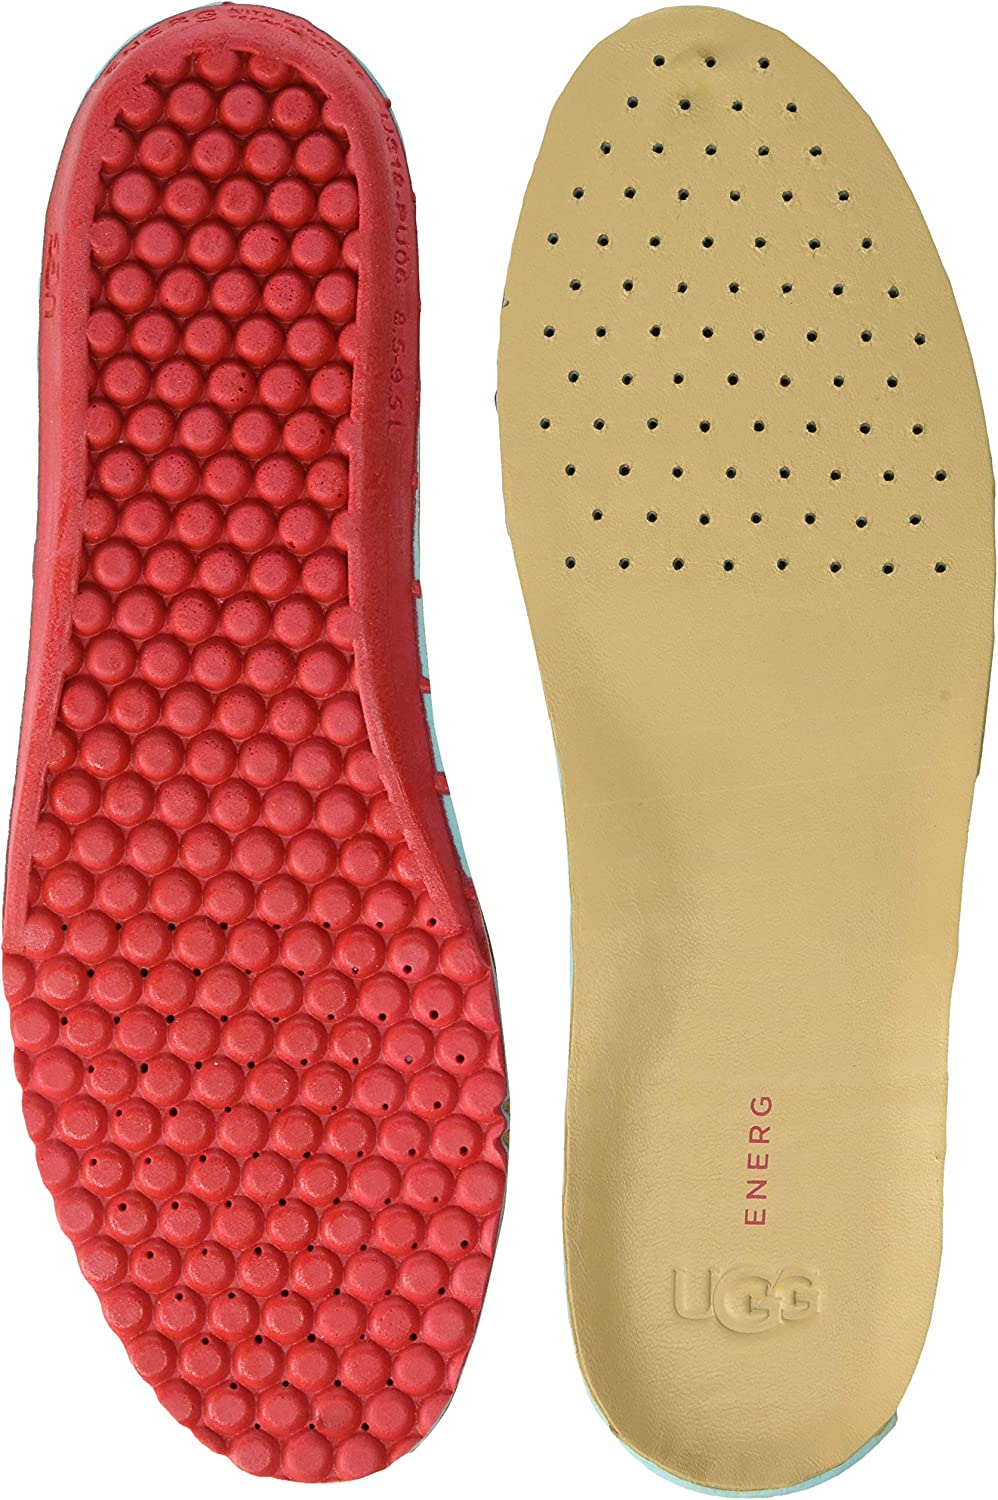 UGG mens Premium Leather Insoles M Natural 11 Insole Chicago Mall US At the price